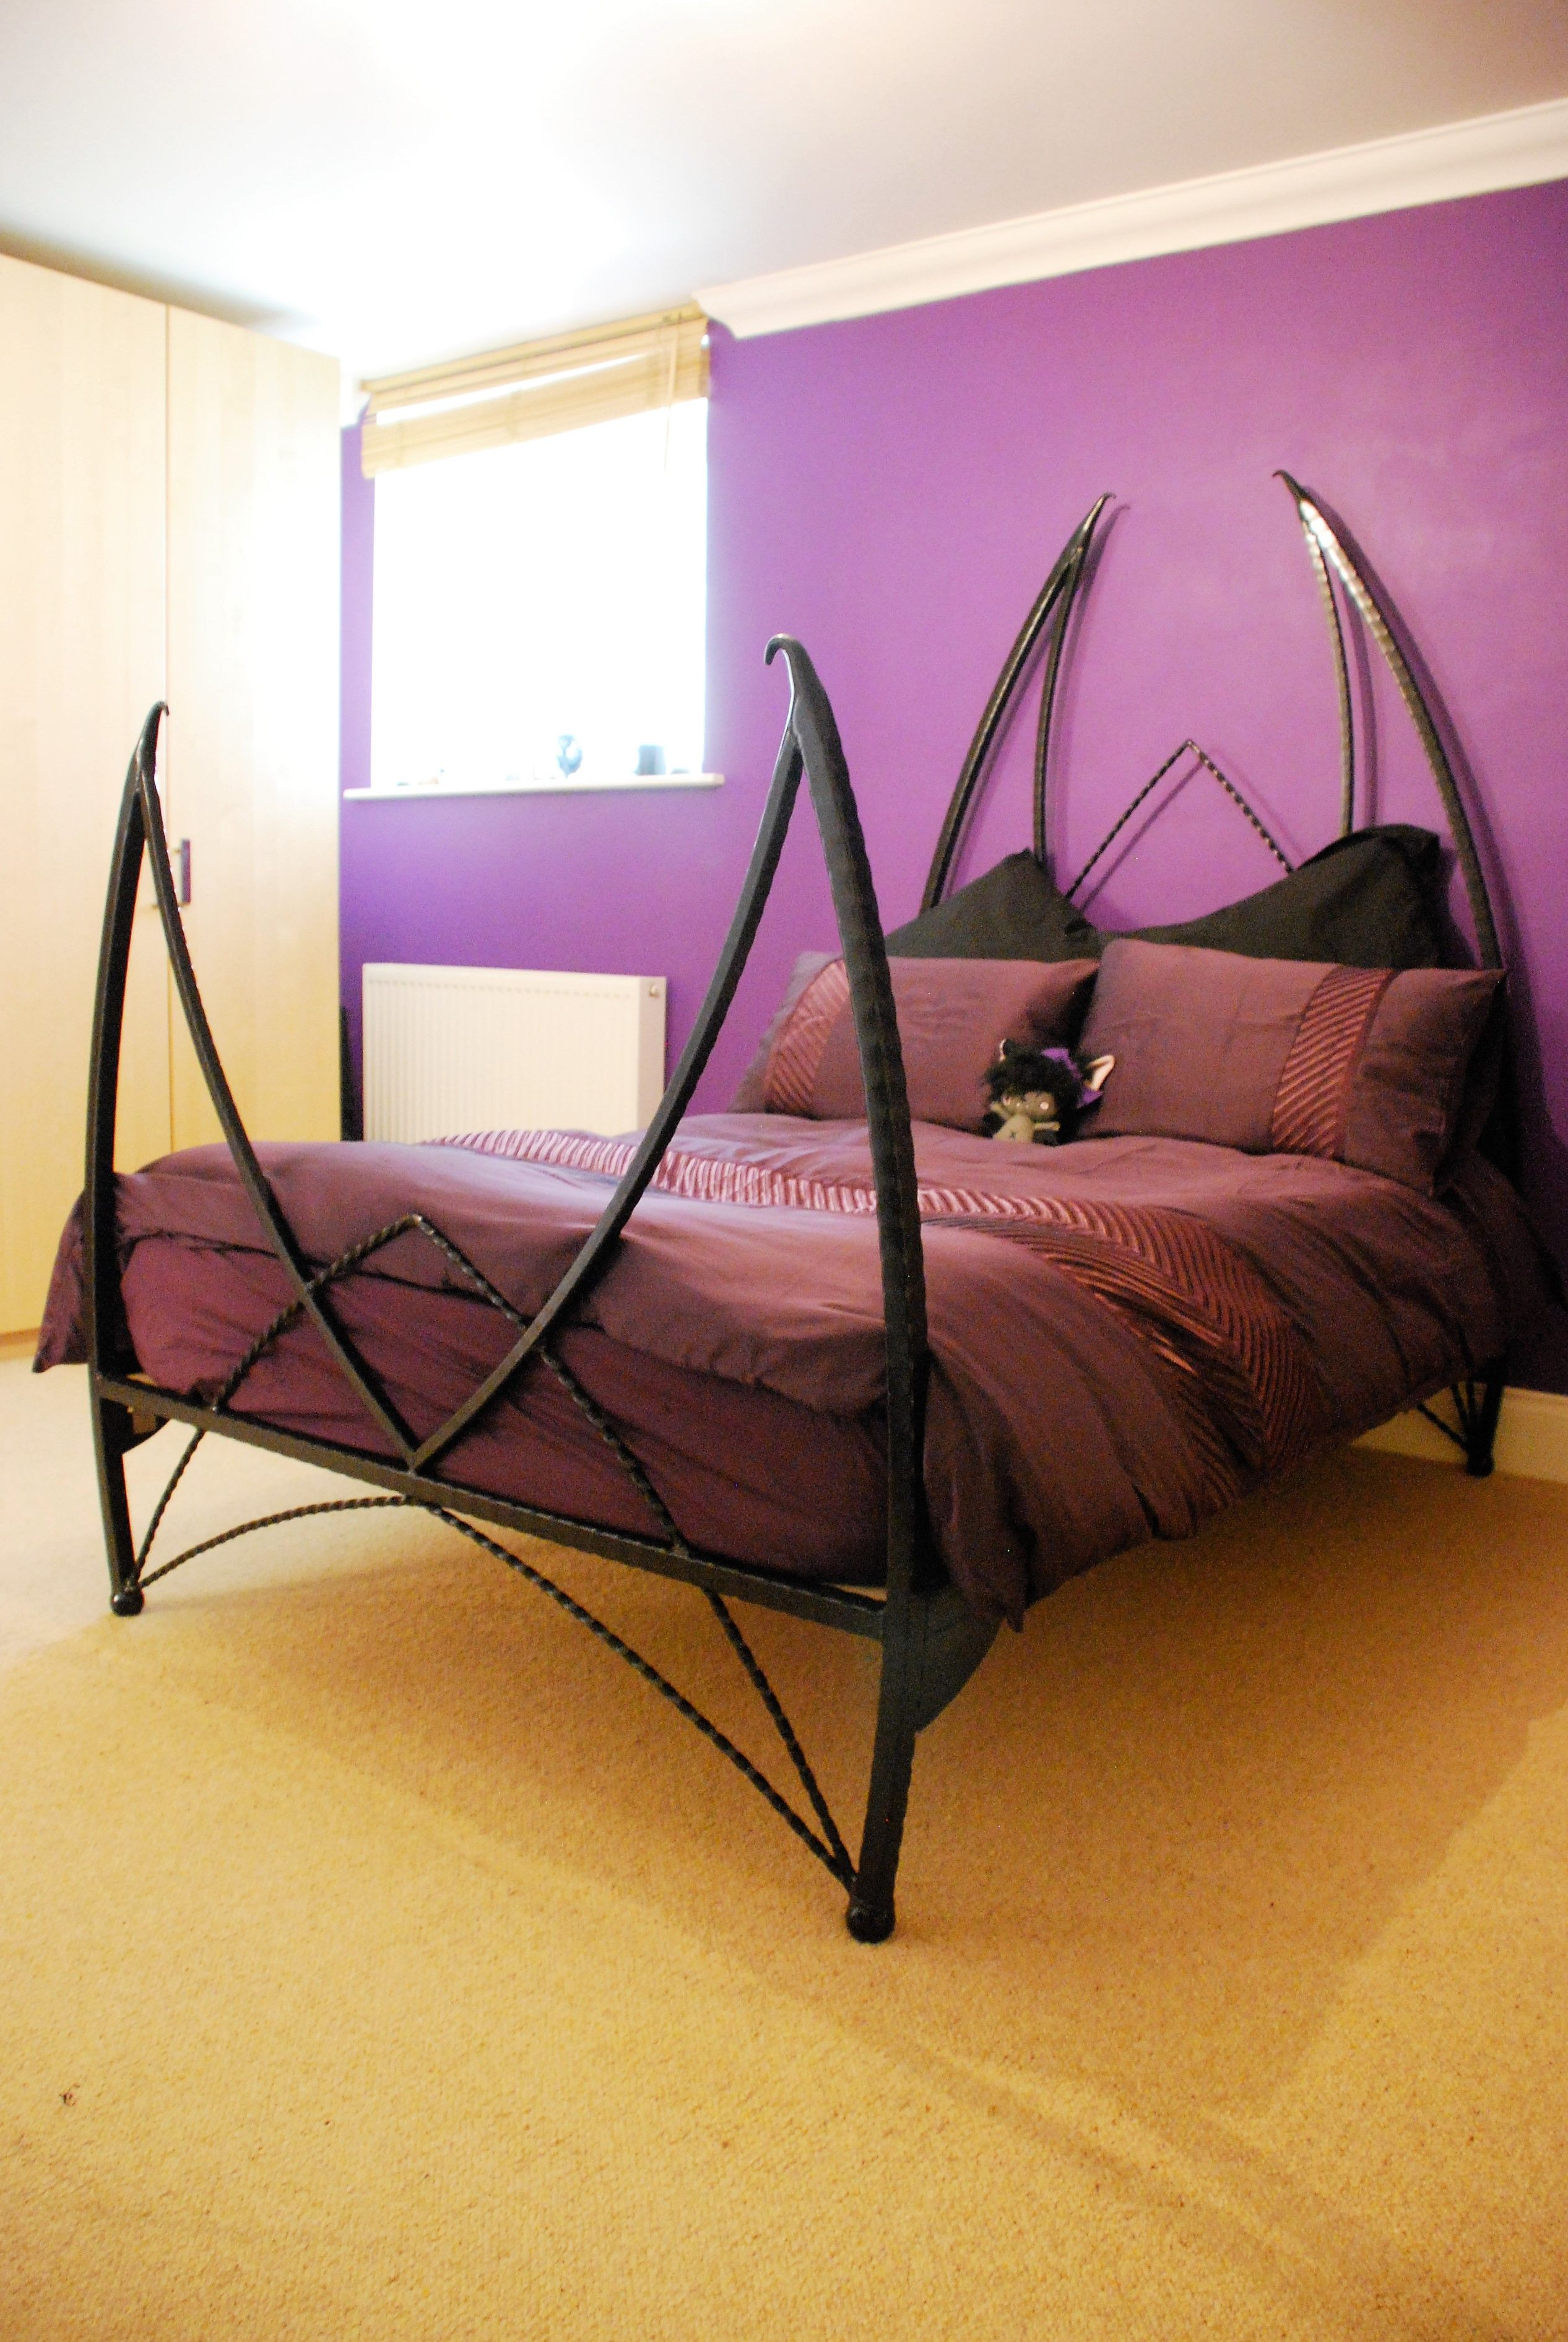 Demon iron bed with the low foot frame option, the